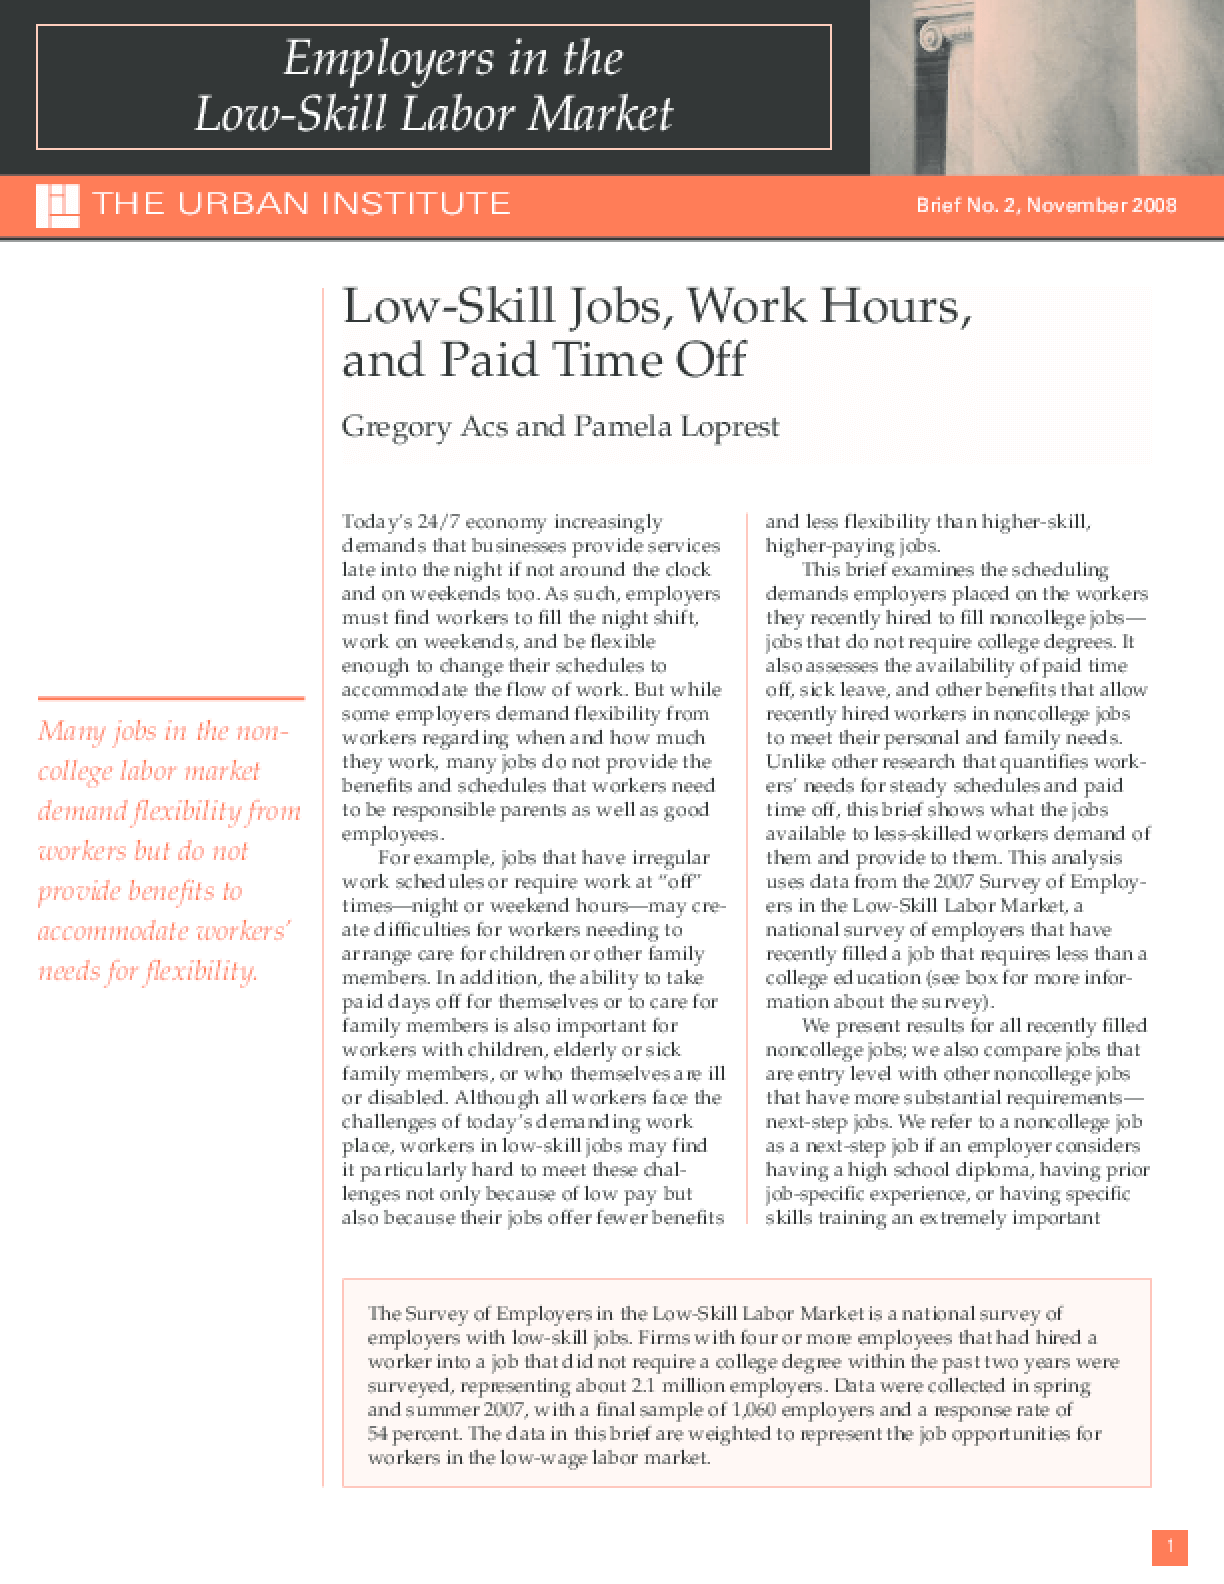 Low-Skill Jobs, Work Hours, and Paid Time Off